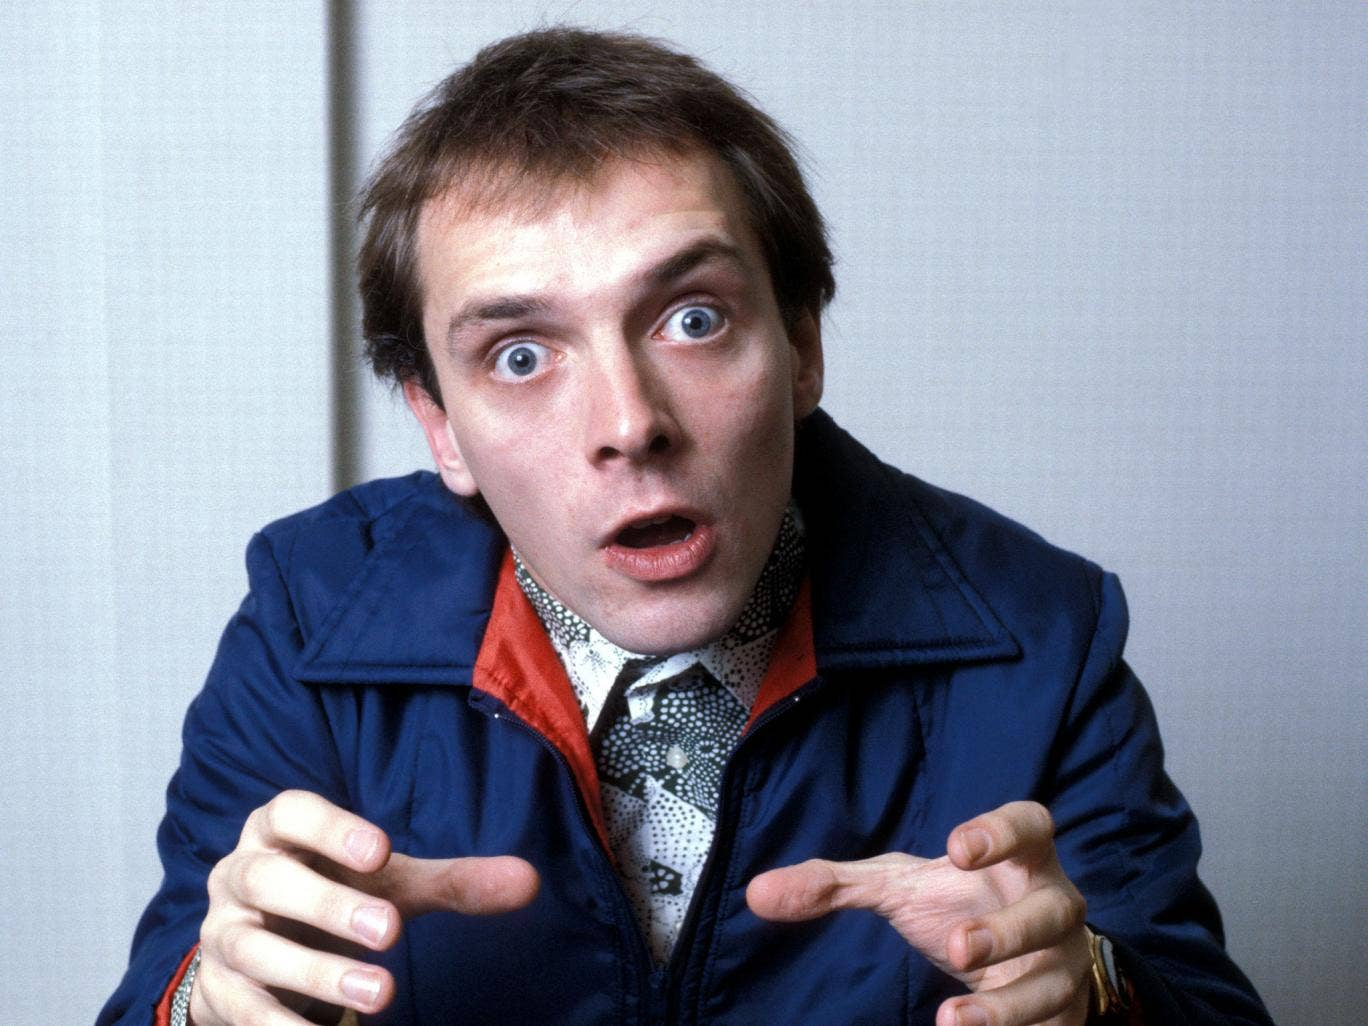 Rik Mayall in The Comedy Vaults: The Young Ones star died on 9 June aged 56